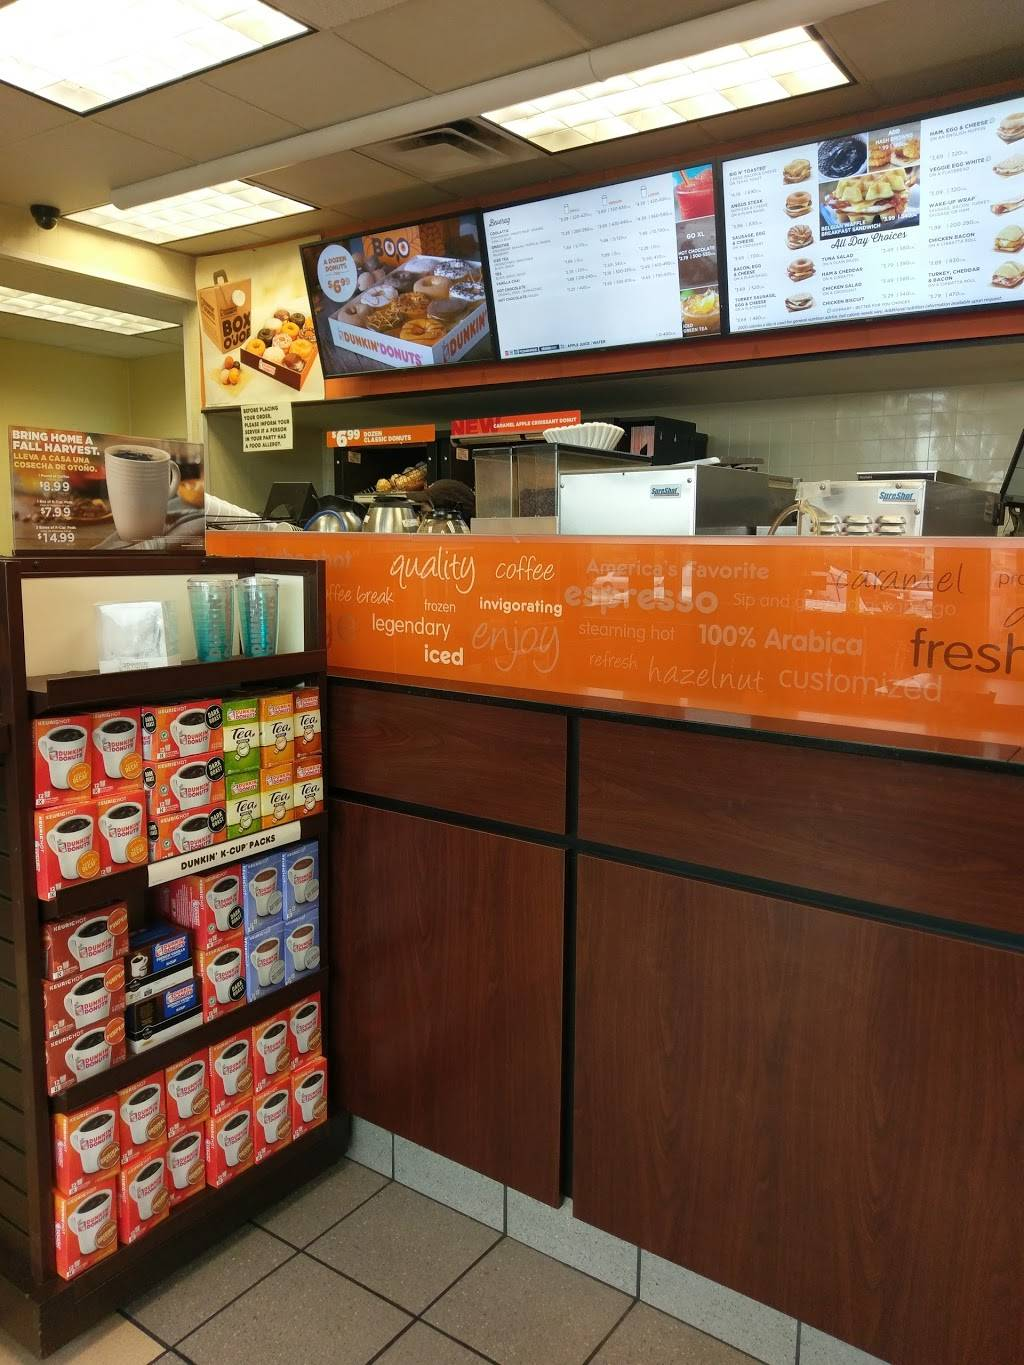 Dunkin Donuts | cafe | 470 Broad Ave, Ridgefield, NJ 07657, USA | 2019454828 OR +1 201-945-4828